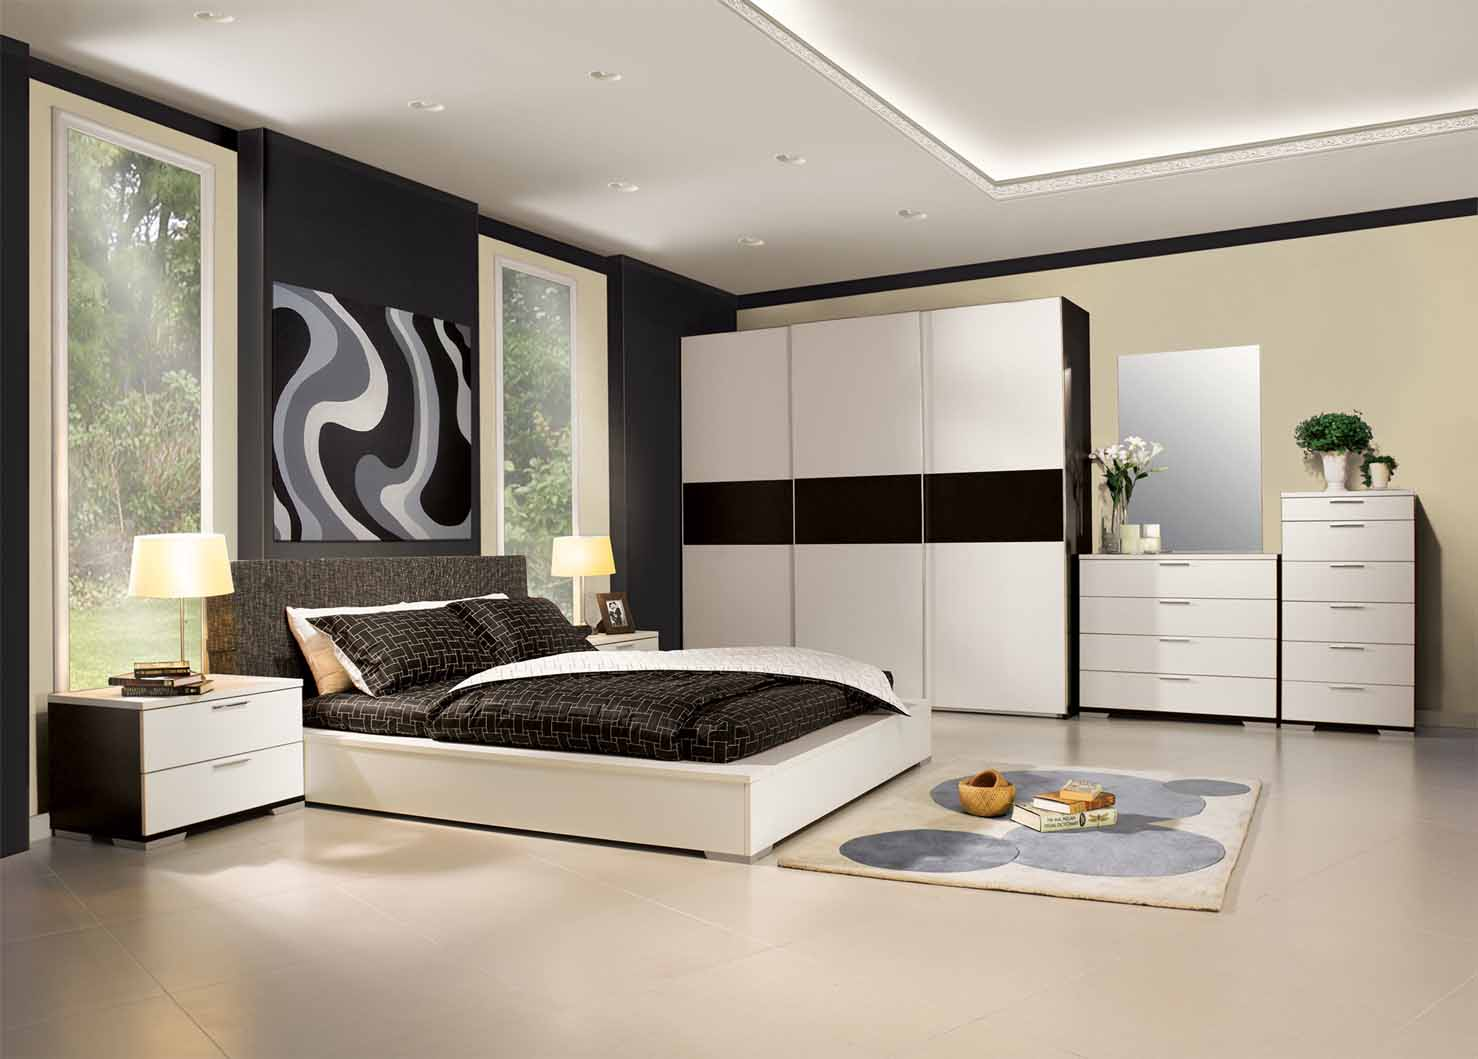 Home Interior Designs: Modern Bedroom Ideas